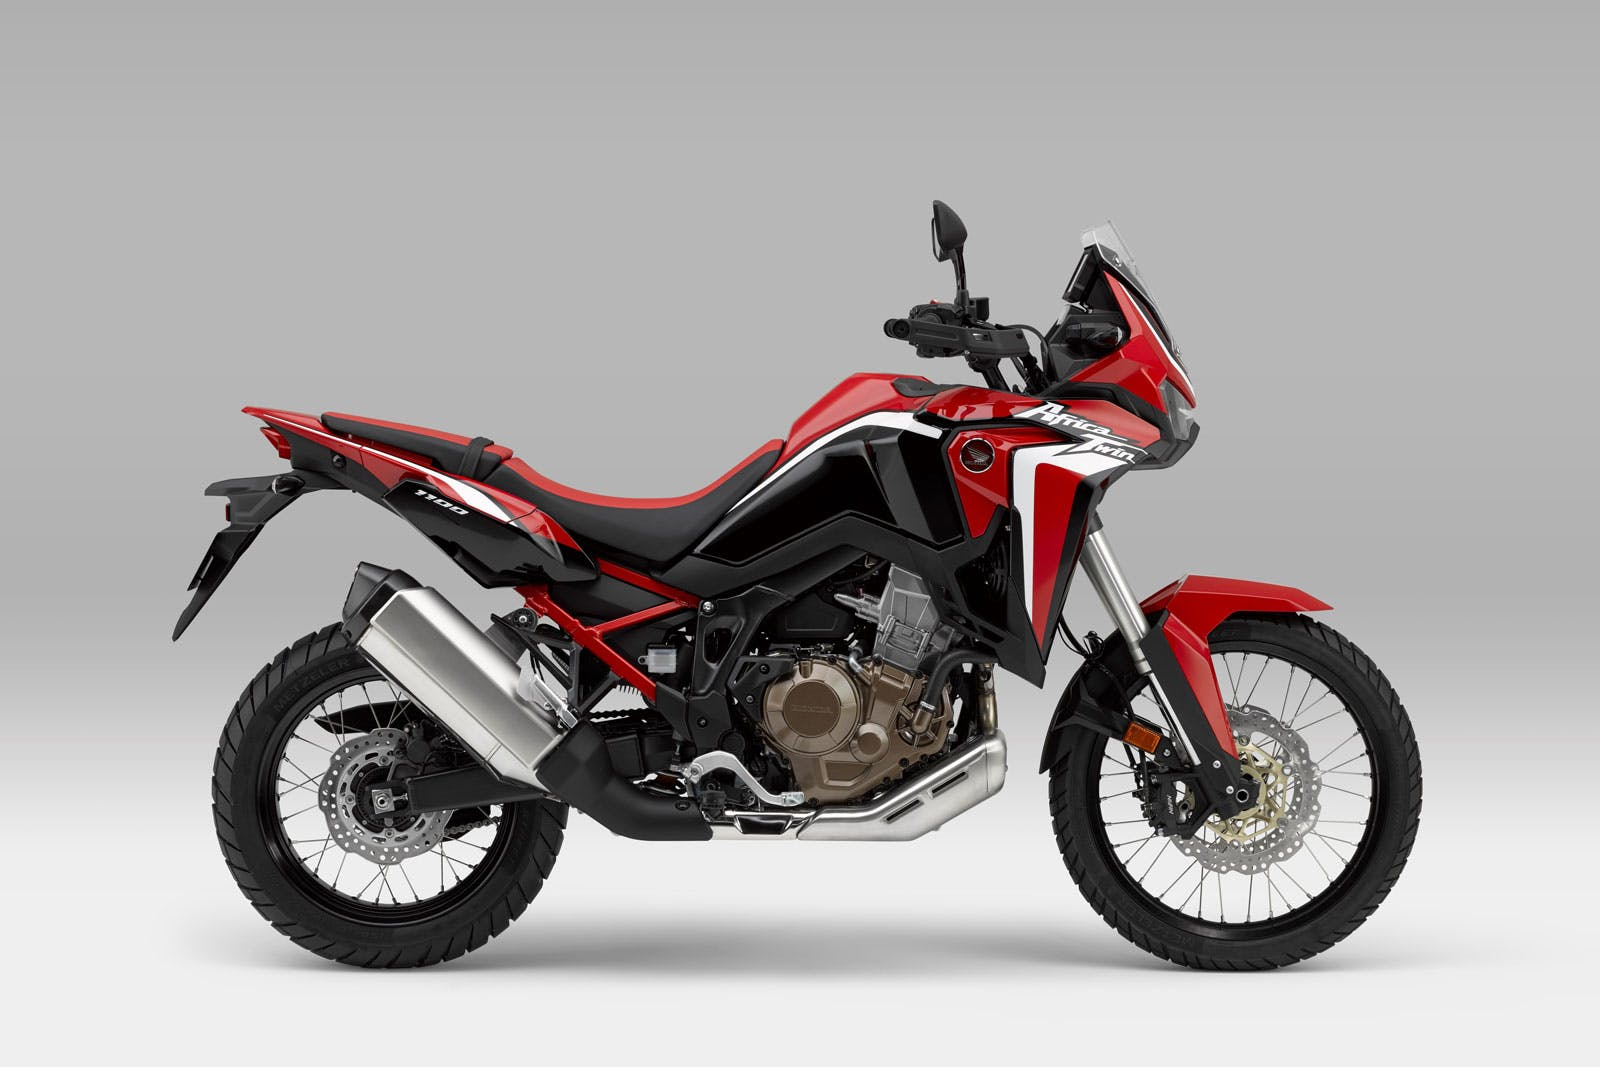 Honda Africa Twin 1100 in Grand Prix Red colour